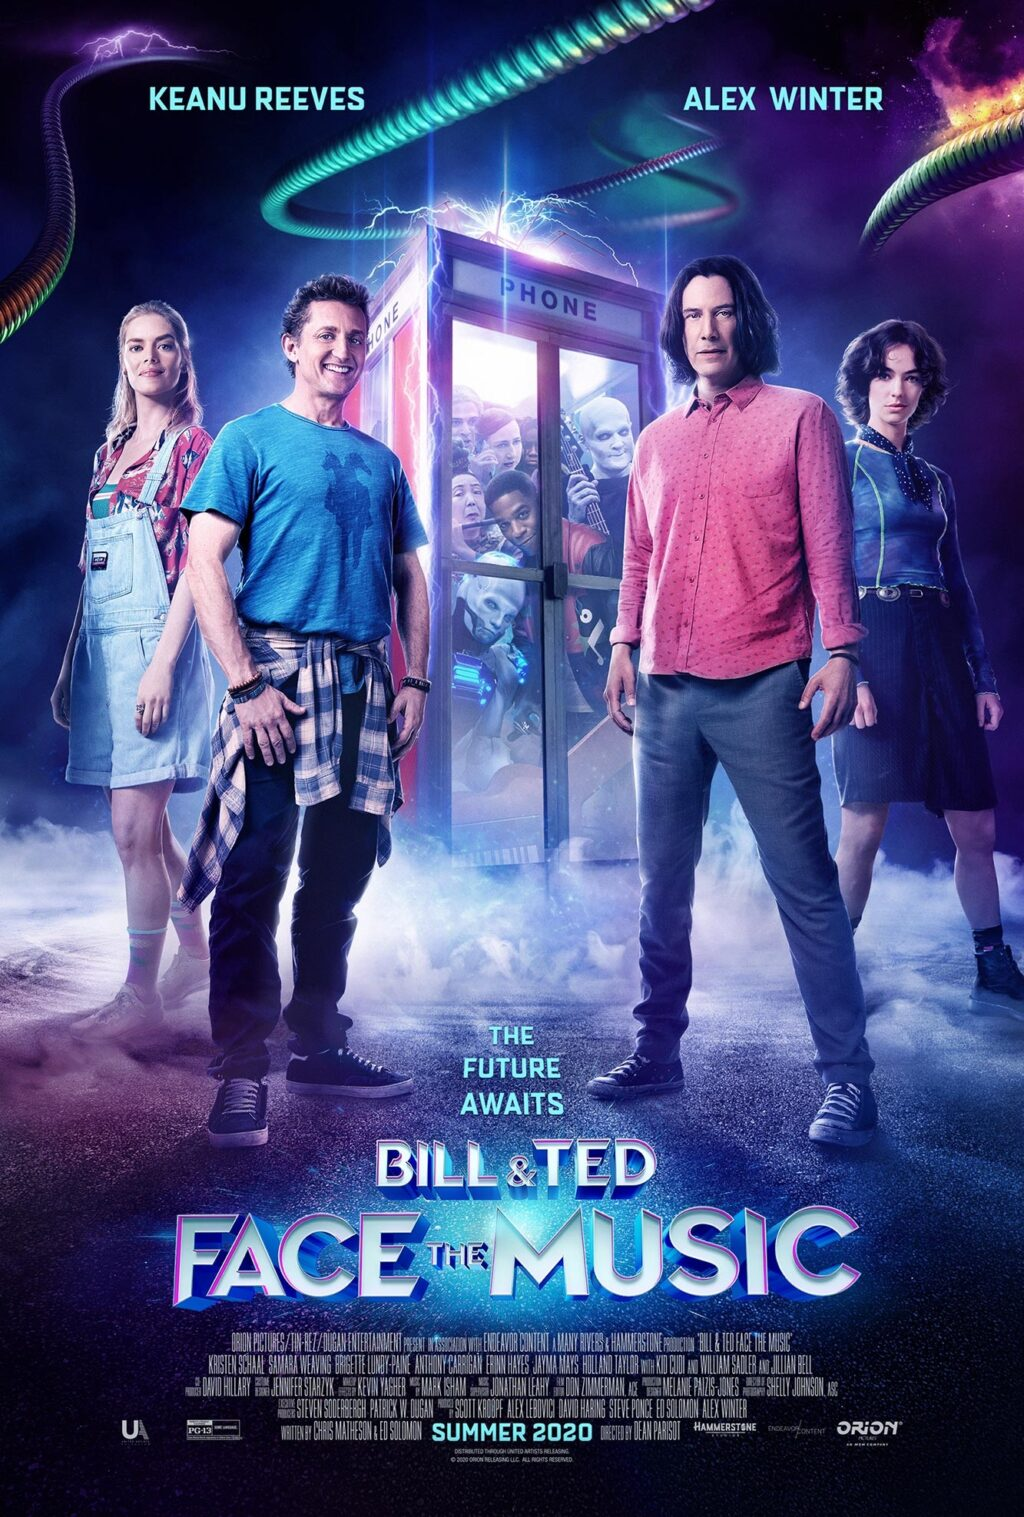 BILL TED FACE THE MUSIC poster 1024x1517 - BILL & TED FACE THE MUSIC Hits PVOD & Select Theaters September 1st & New Trailer!